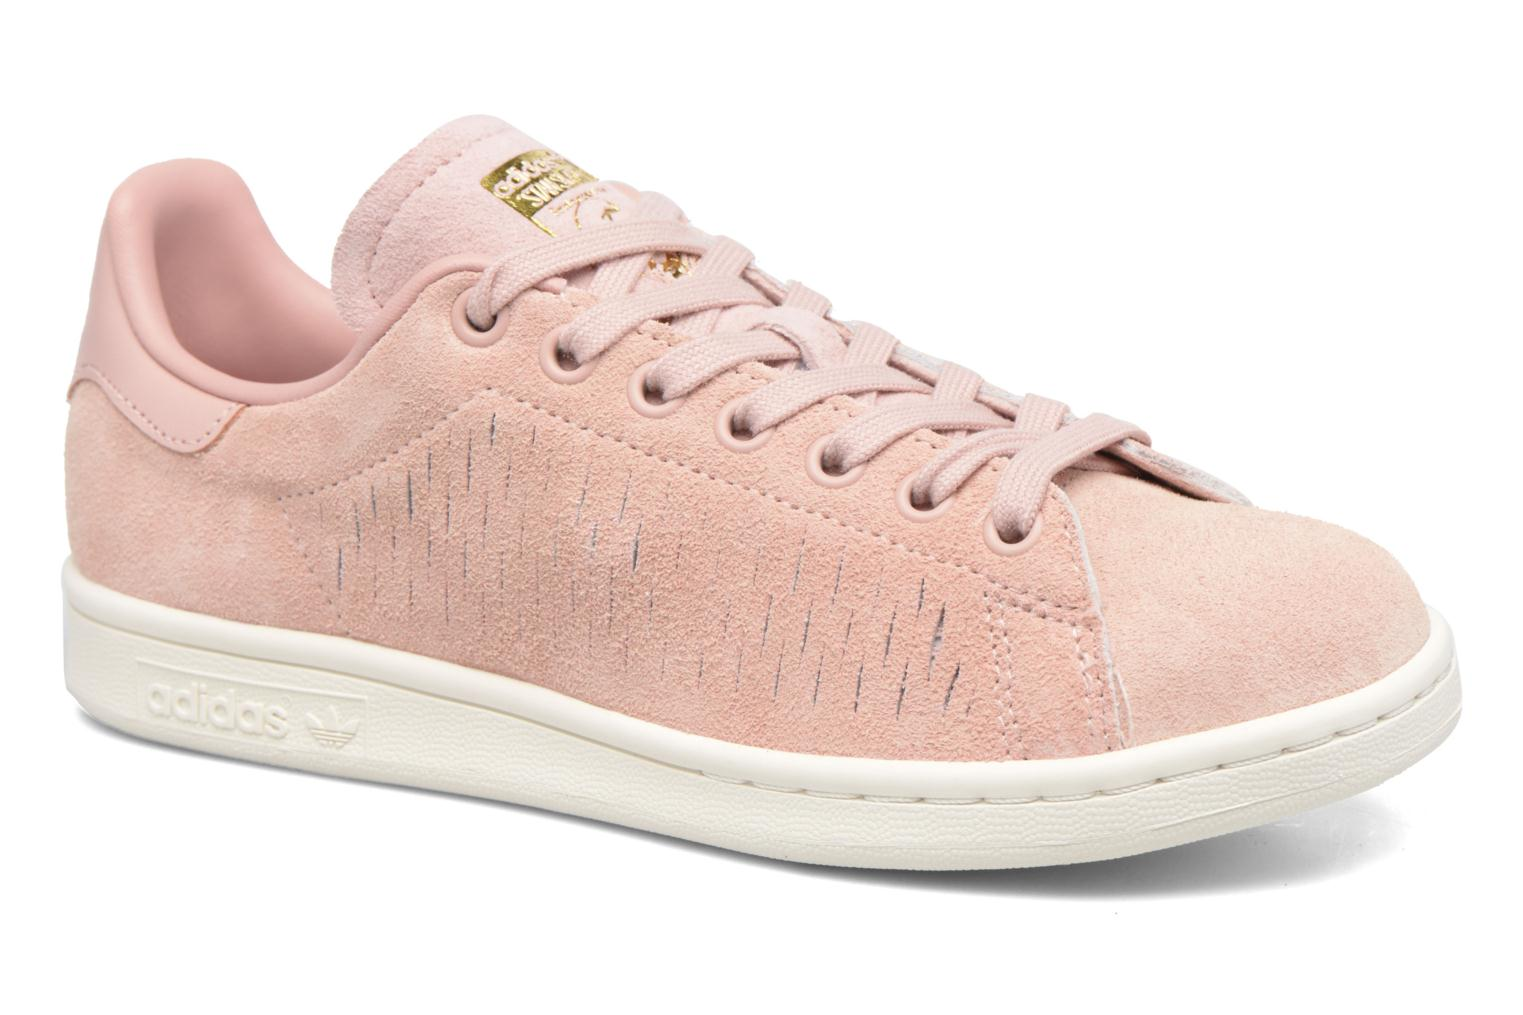 Adidas Originals Stan Smith Rosa 8Hjcb9nyY